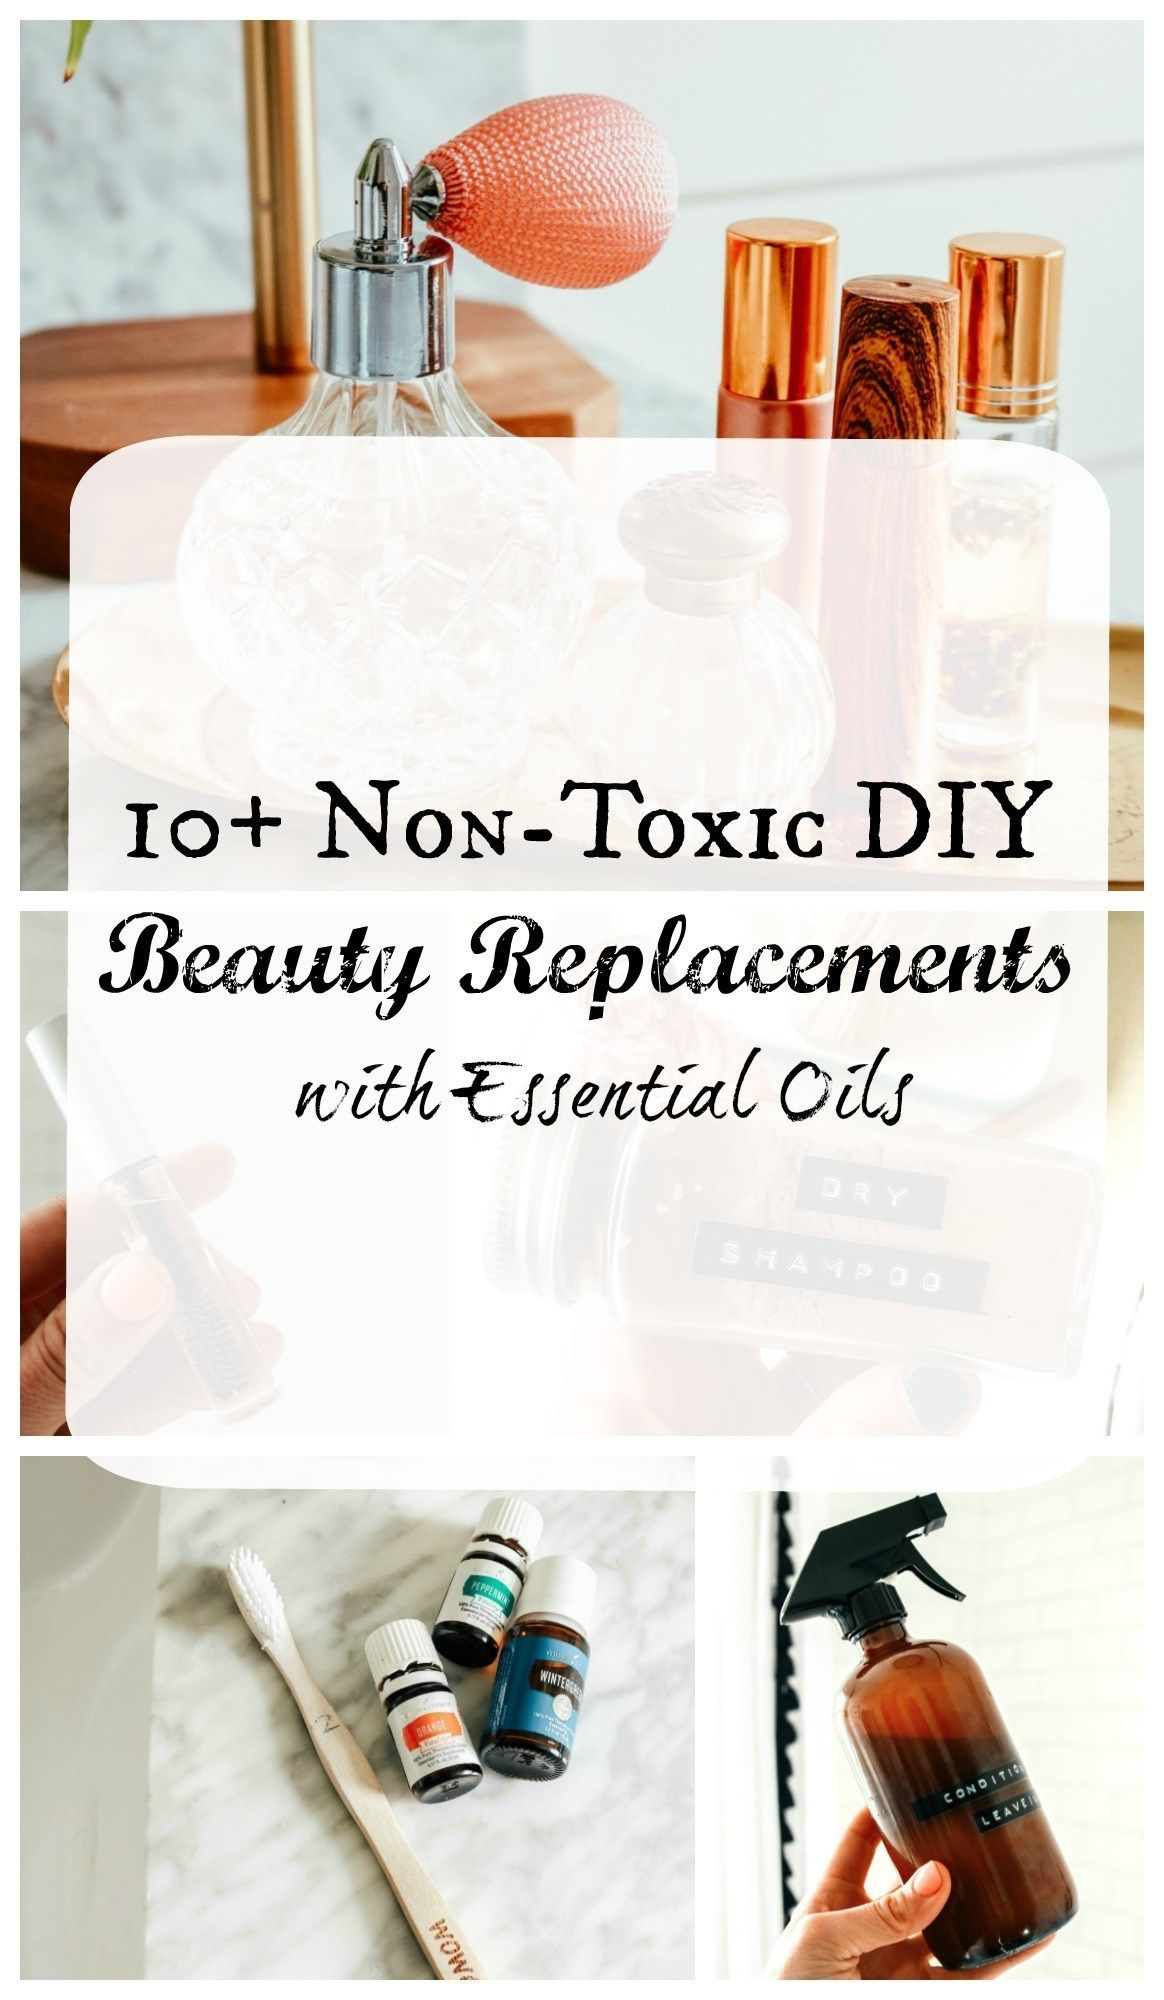 10  Non-Toxic DIY Beauty Replacements using Essential Oils | Nesting with Grace | I've replaced so many of my beauty and household products with all-natural essential oil substitutes. Come explore how I make dry shampoo, eyelash boost serum, teeth whitener, and hair treatment using products that are safe for my family. #essentialoils #naturalbeauty